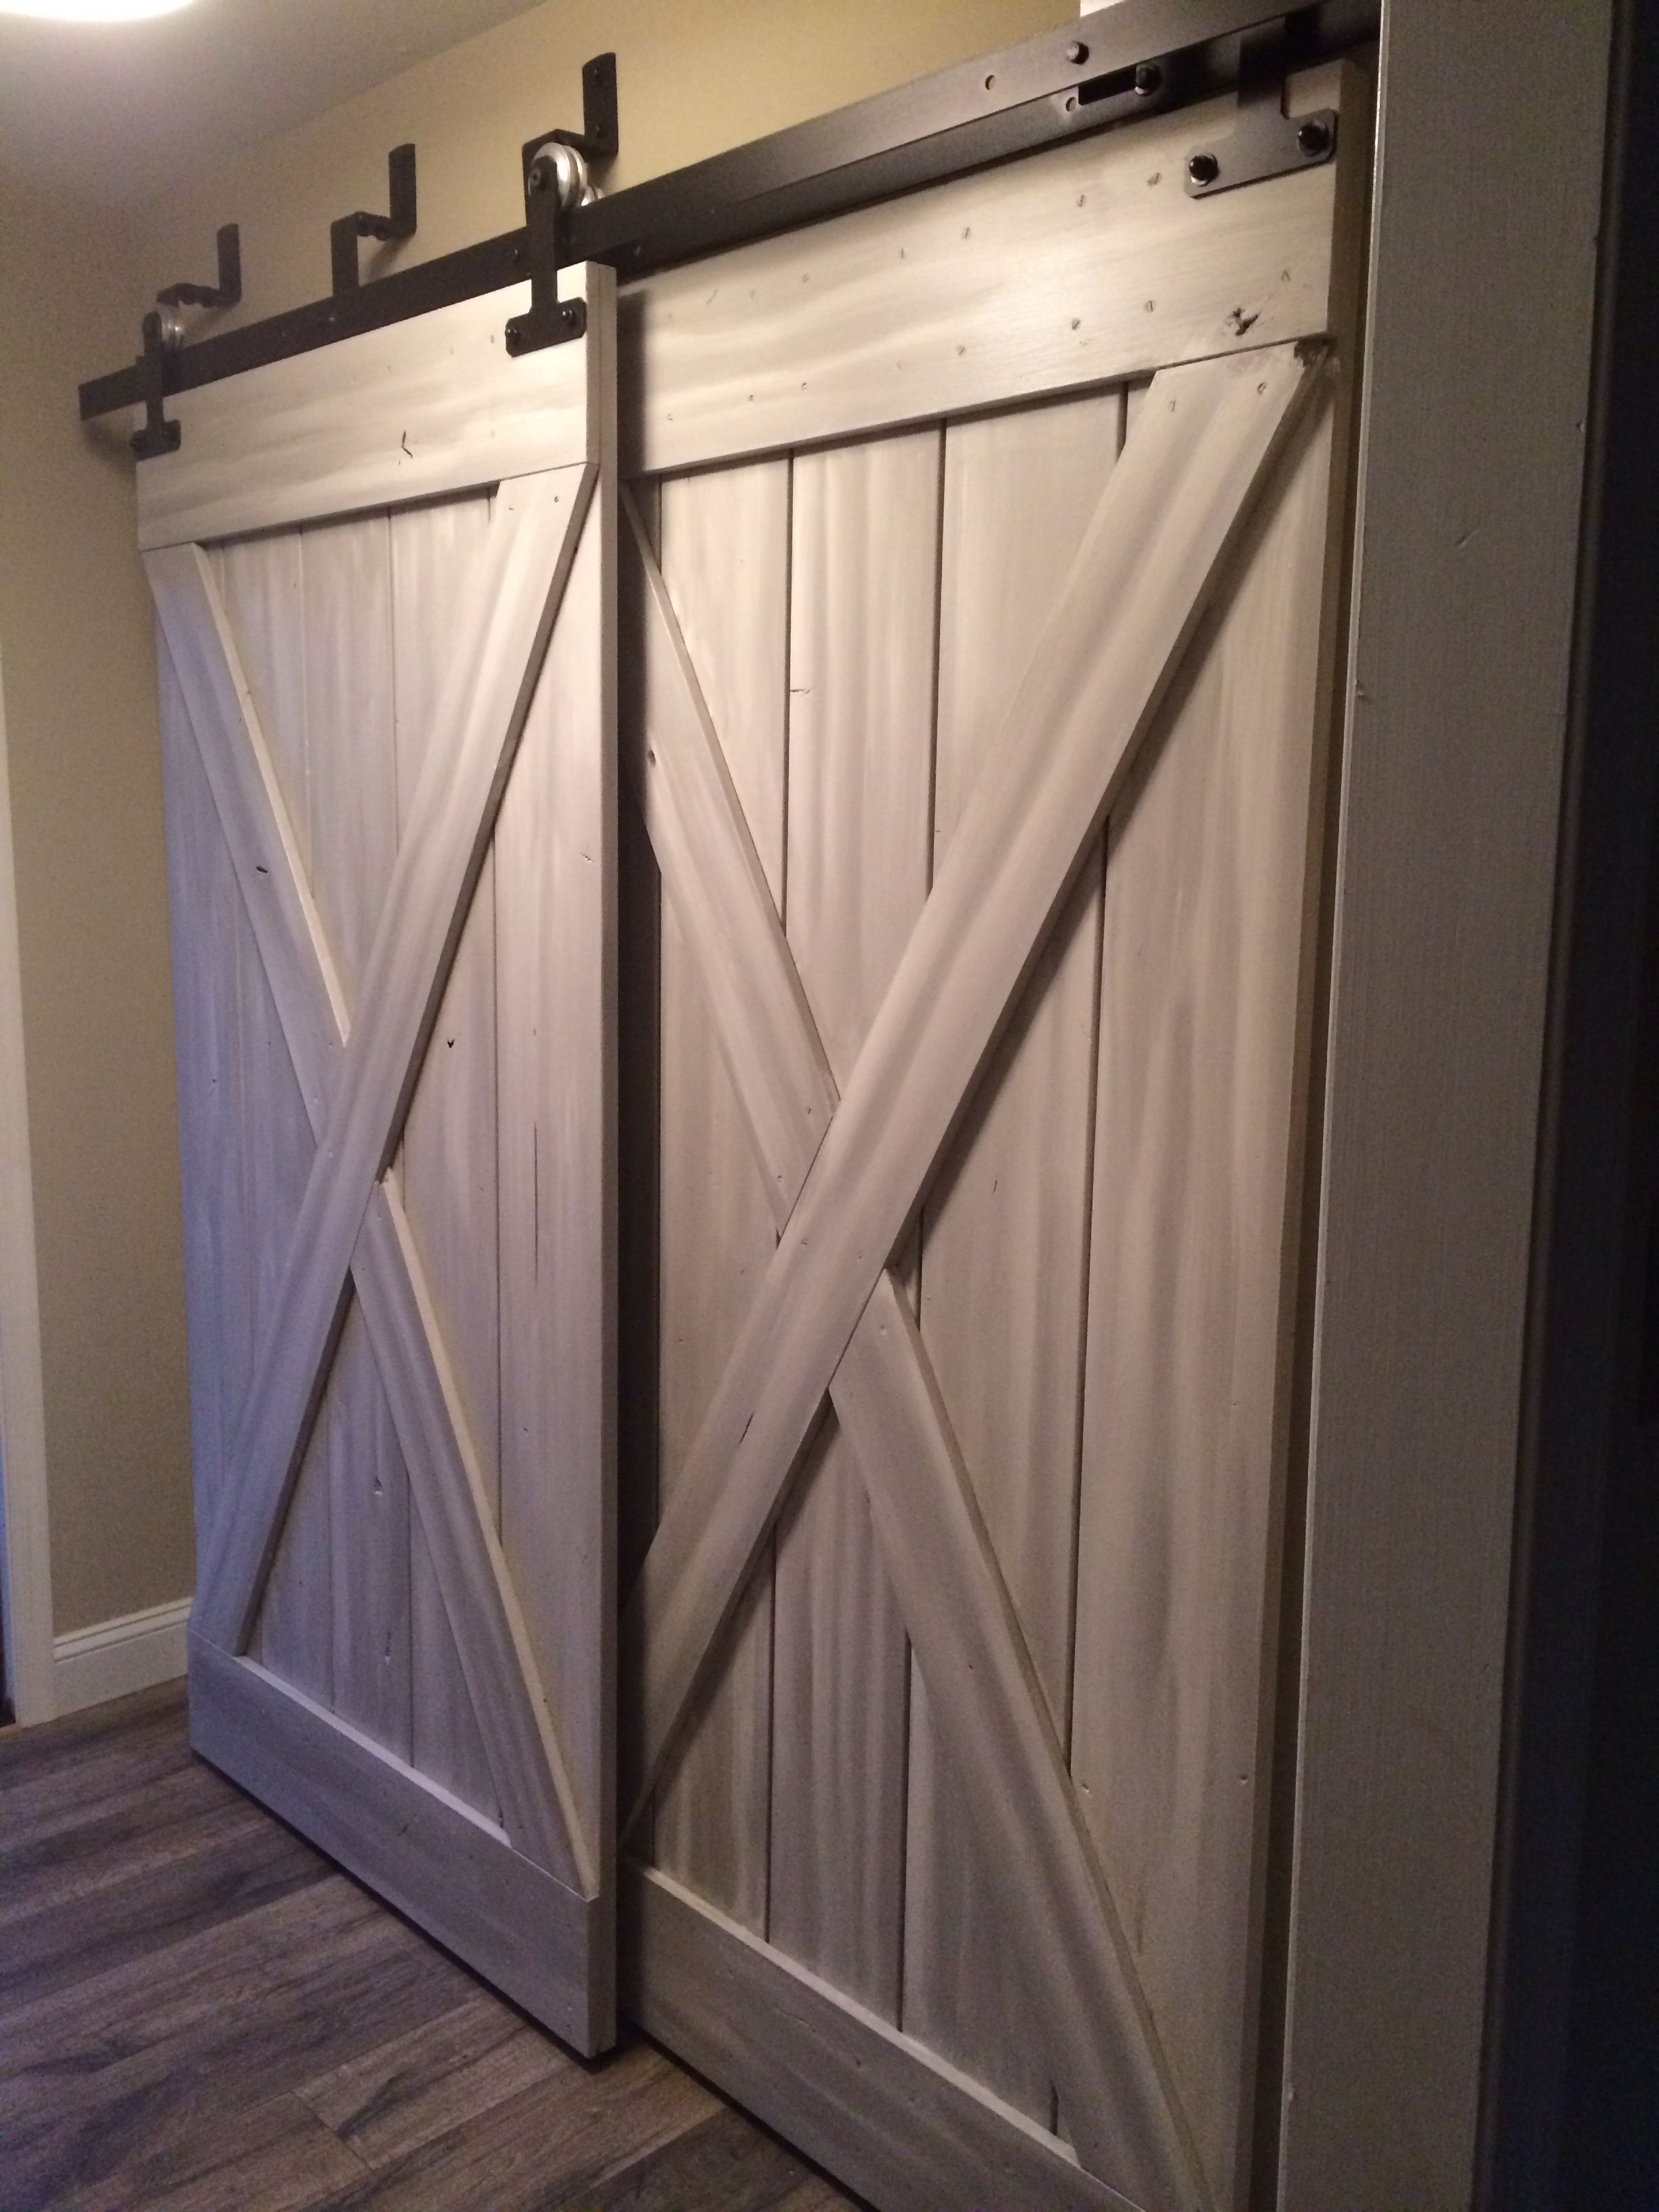 rollers your look ideas these for new closet replacement door a modern room with pin create wood design sliding ikea and